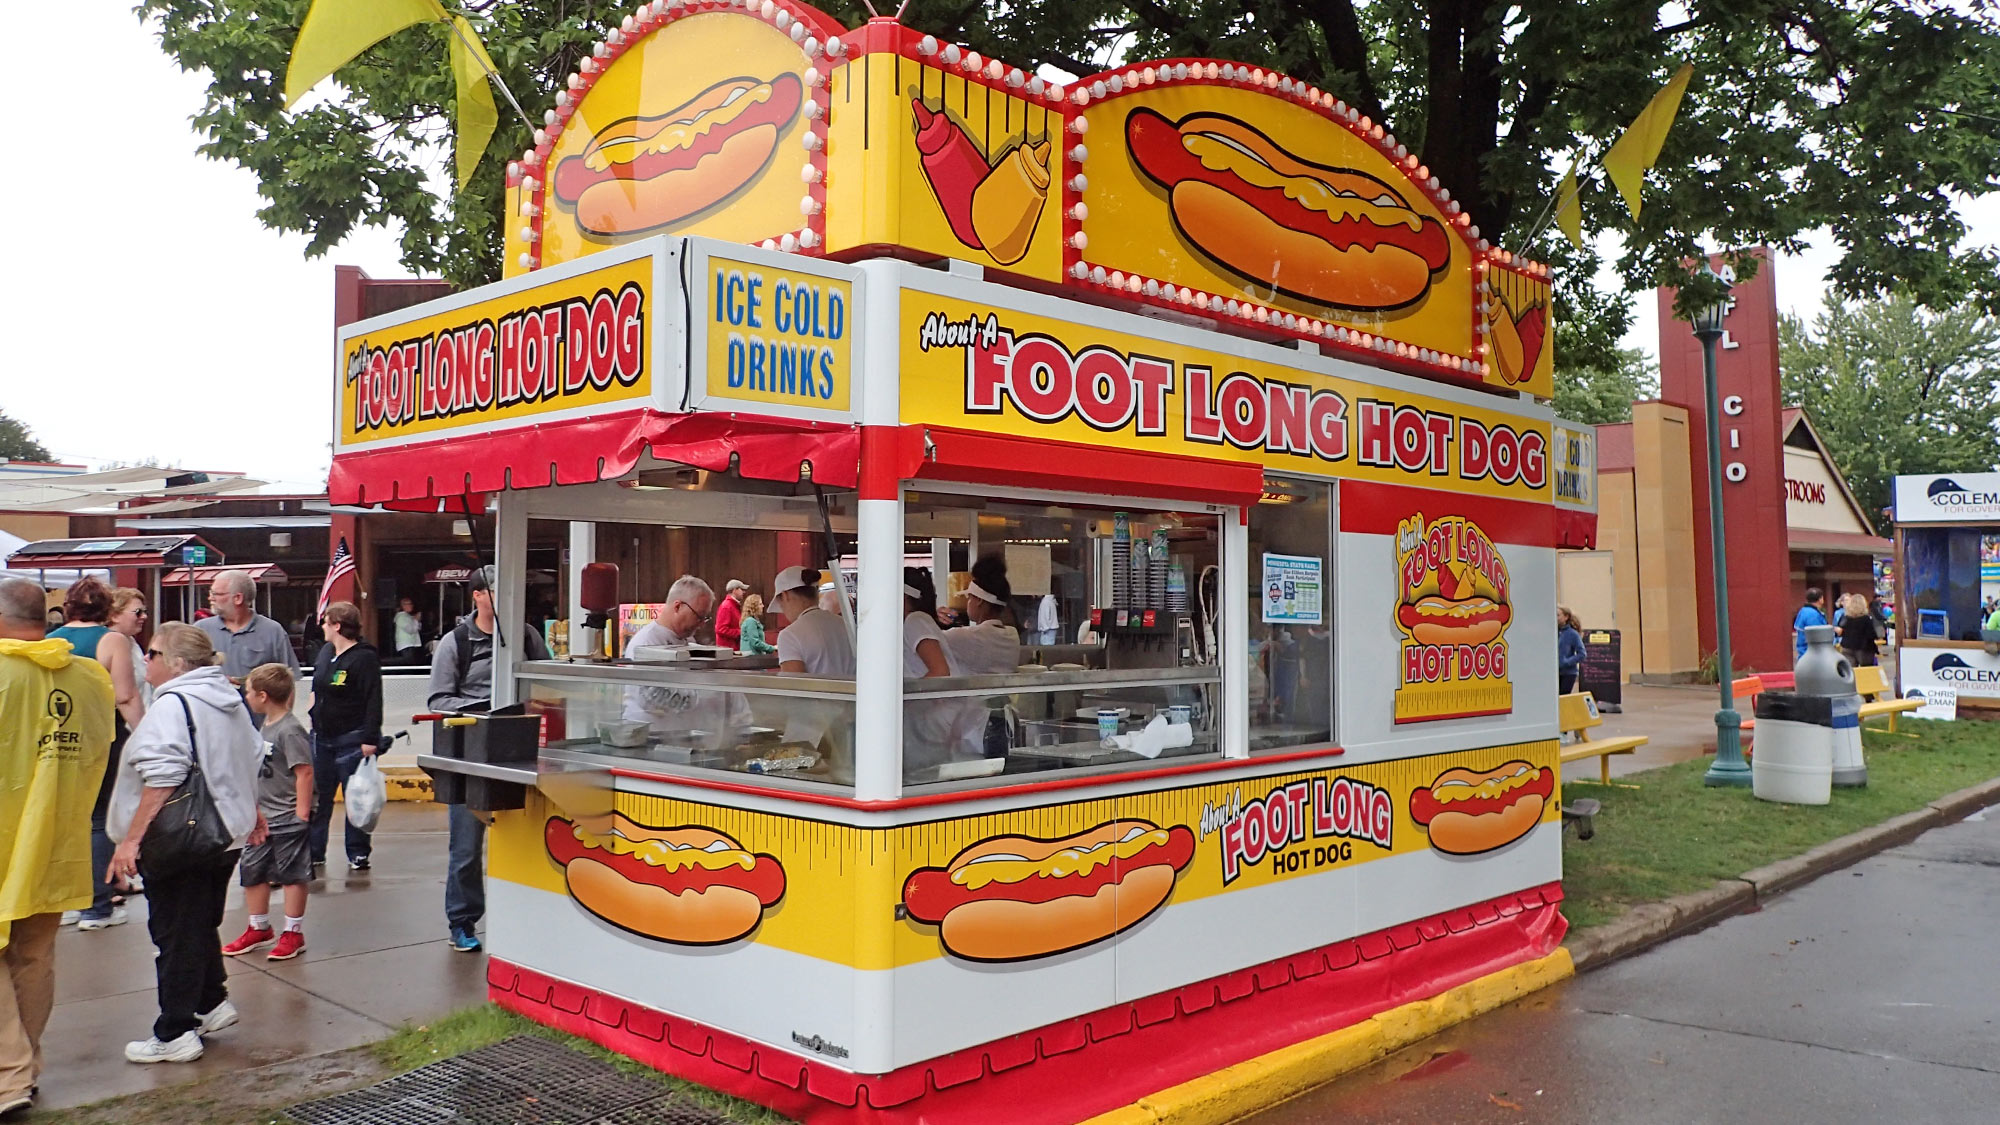 About a Foot-Long Hot Dog